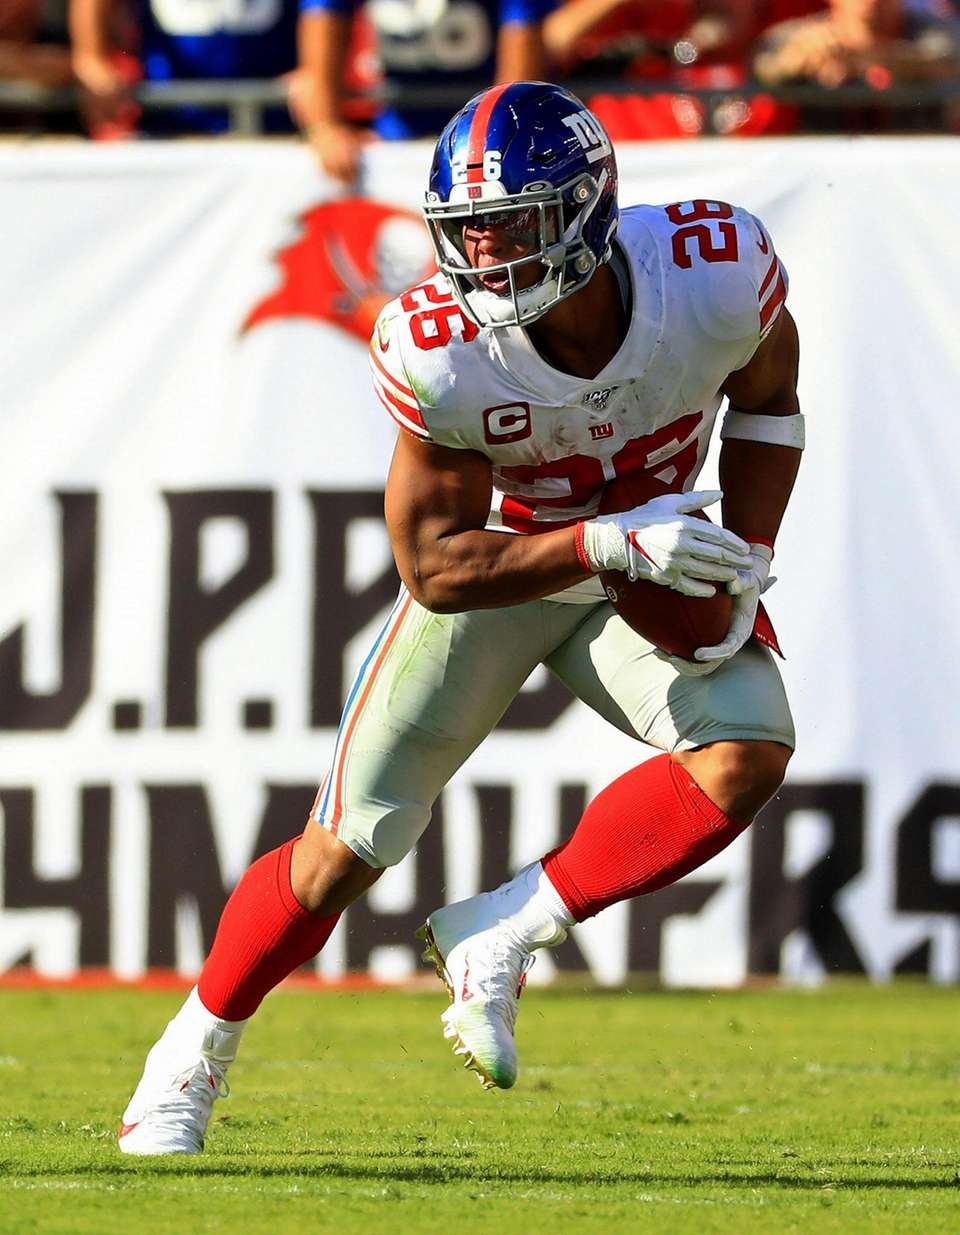 Saquon Barkley #26 of the Giants rushes during